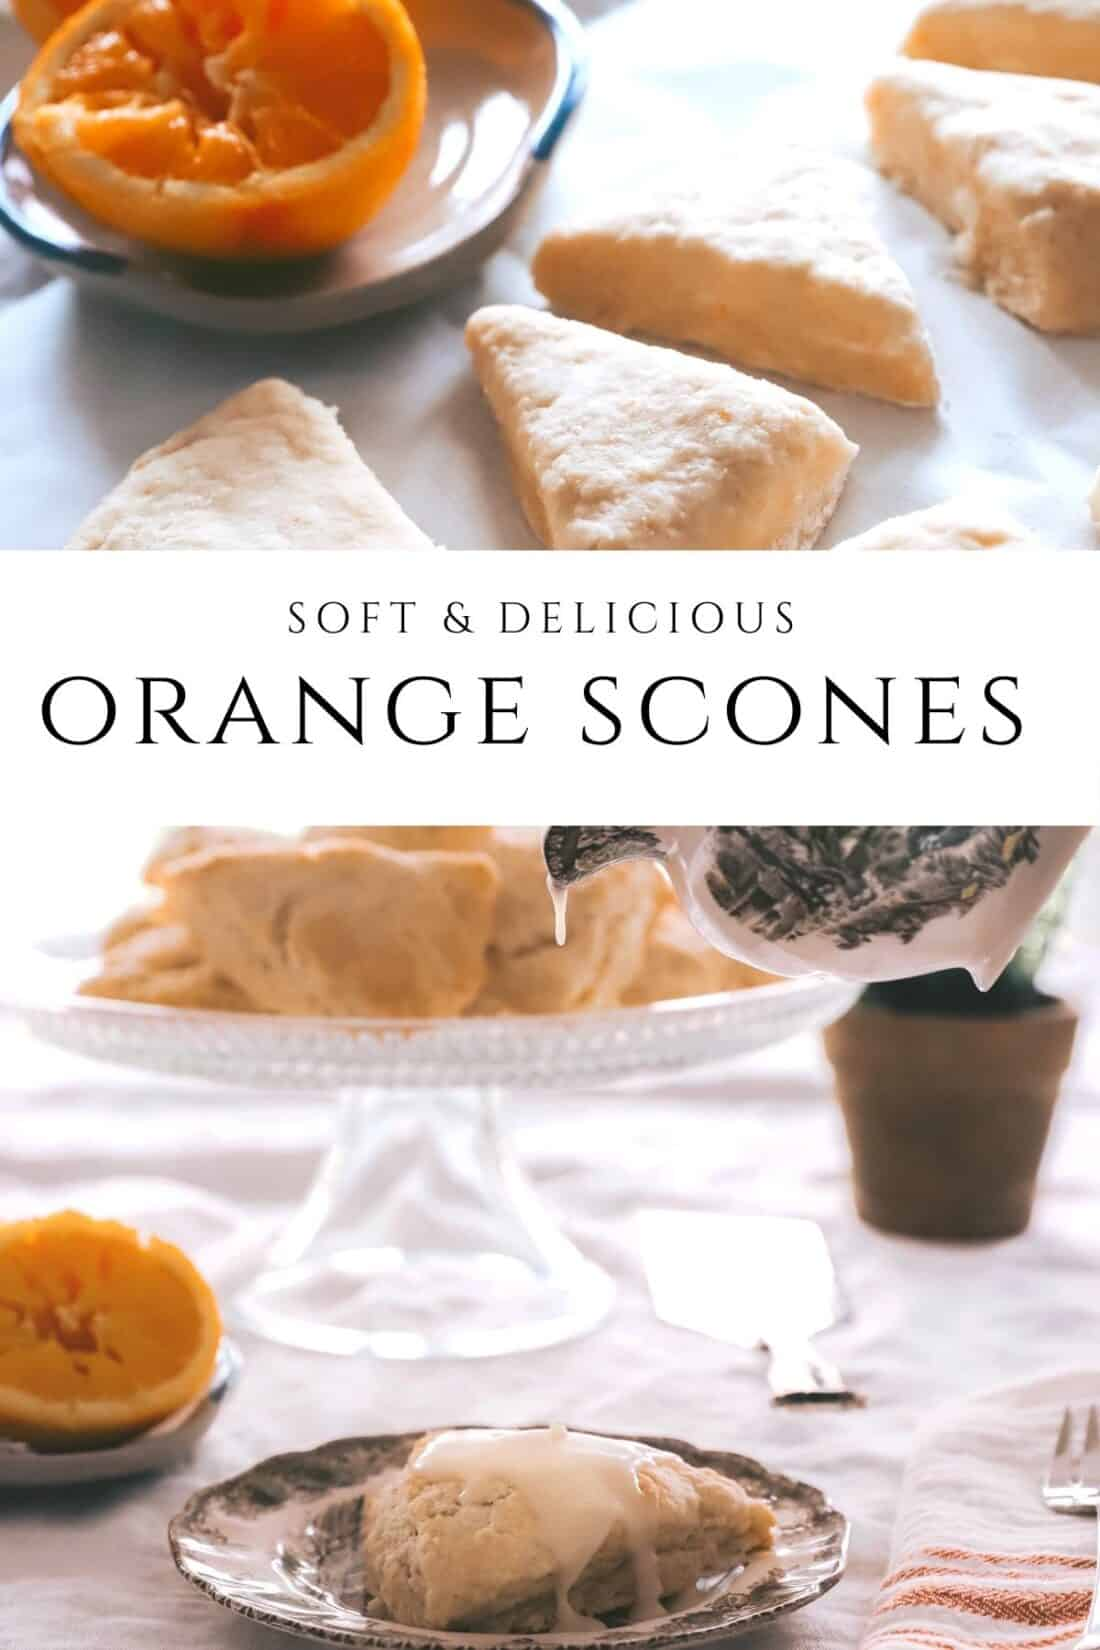 soft and delicious orange scones laid on a table